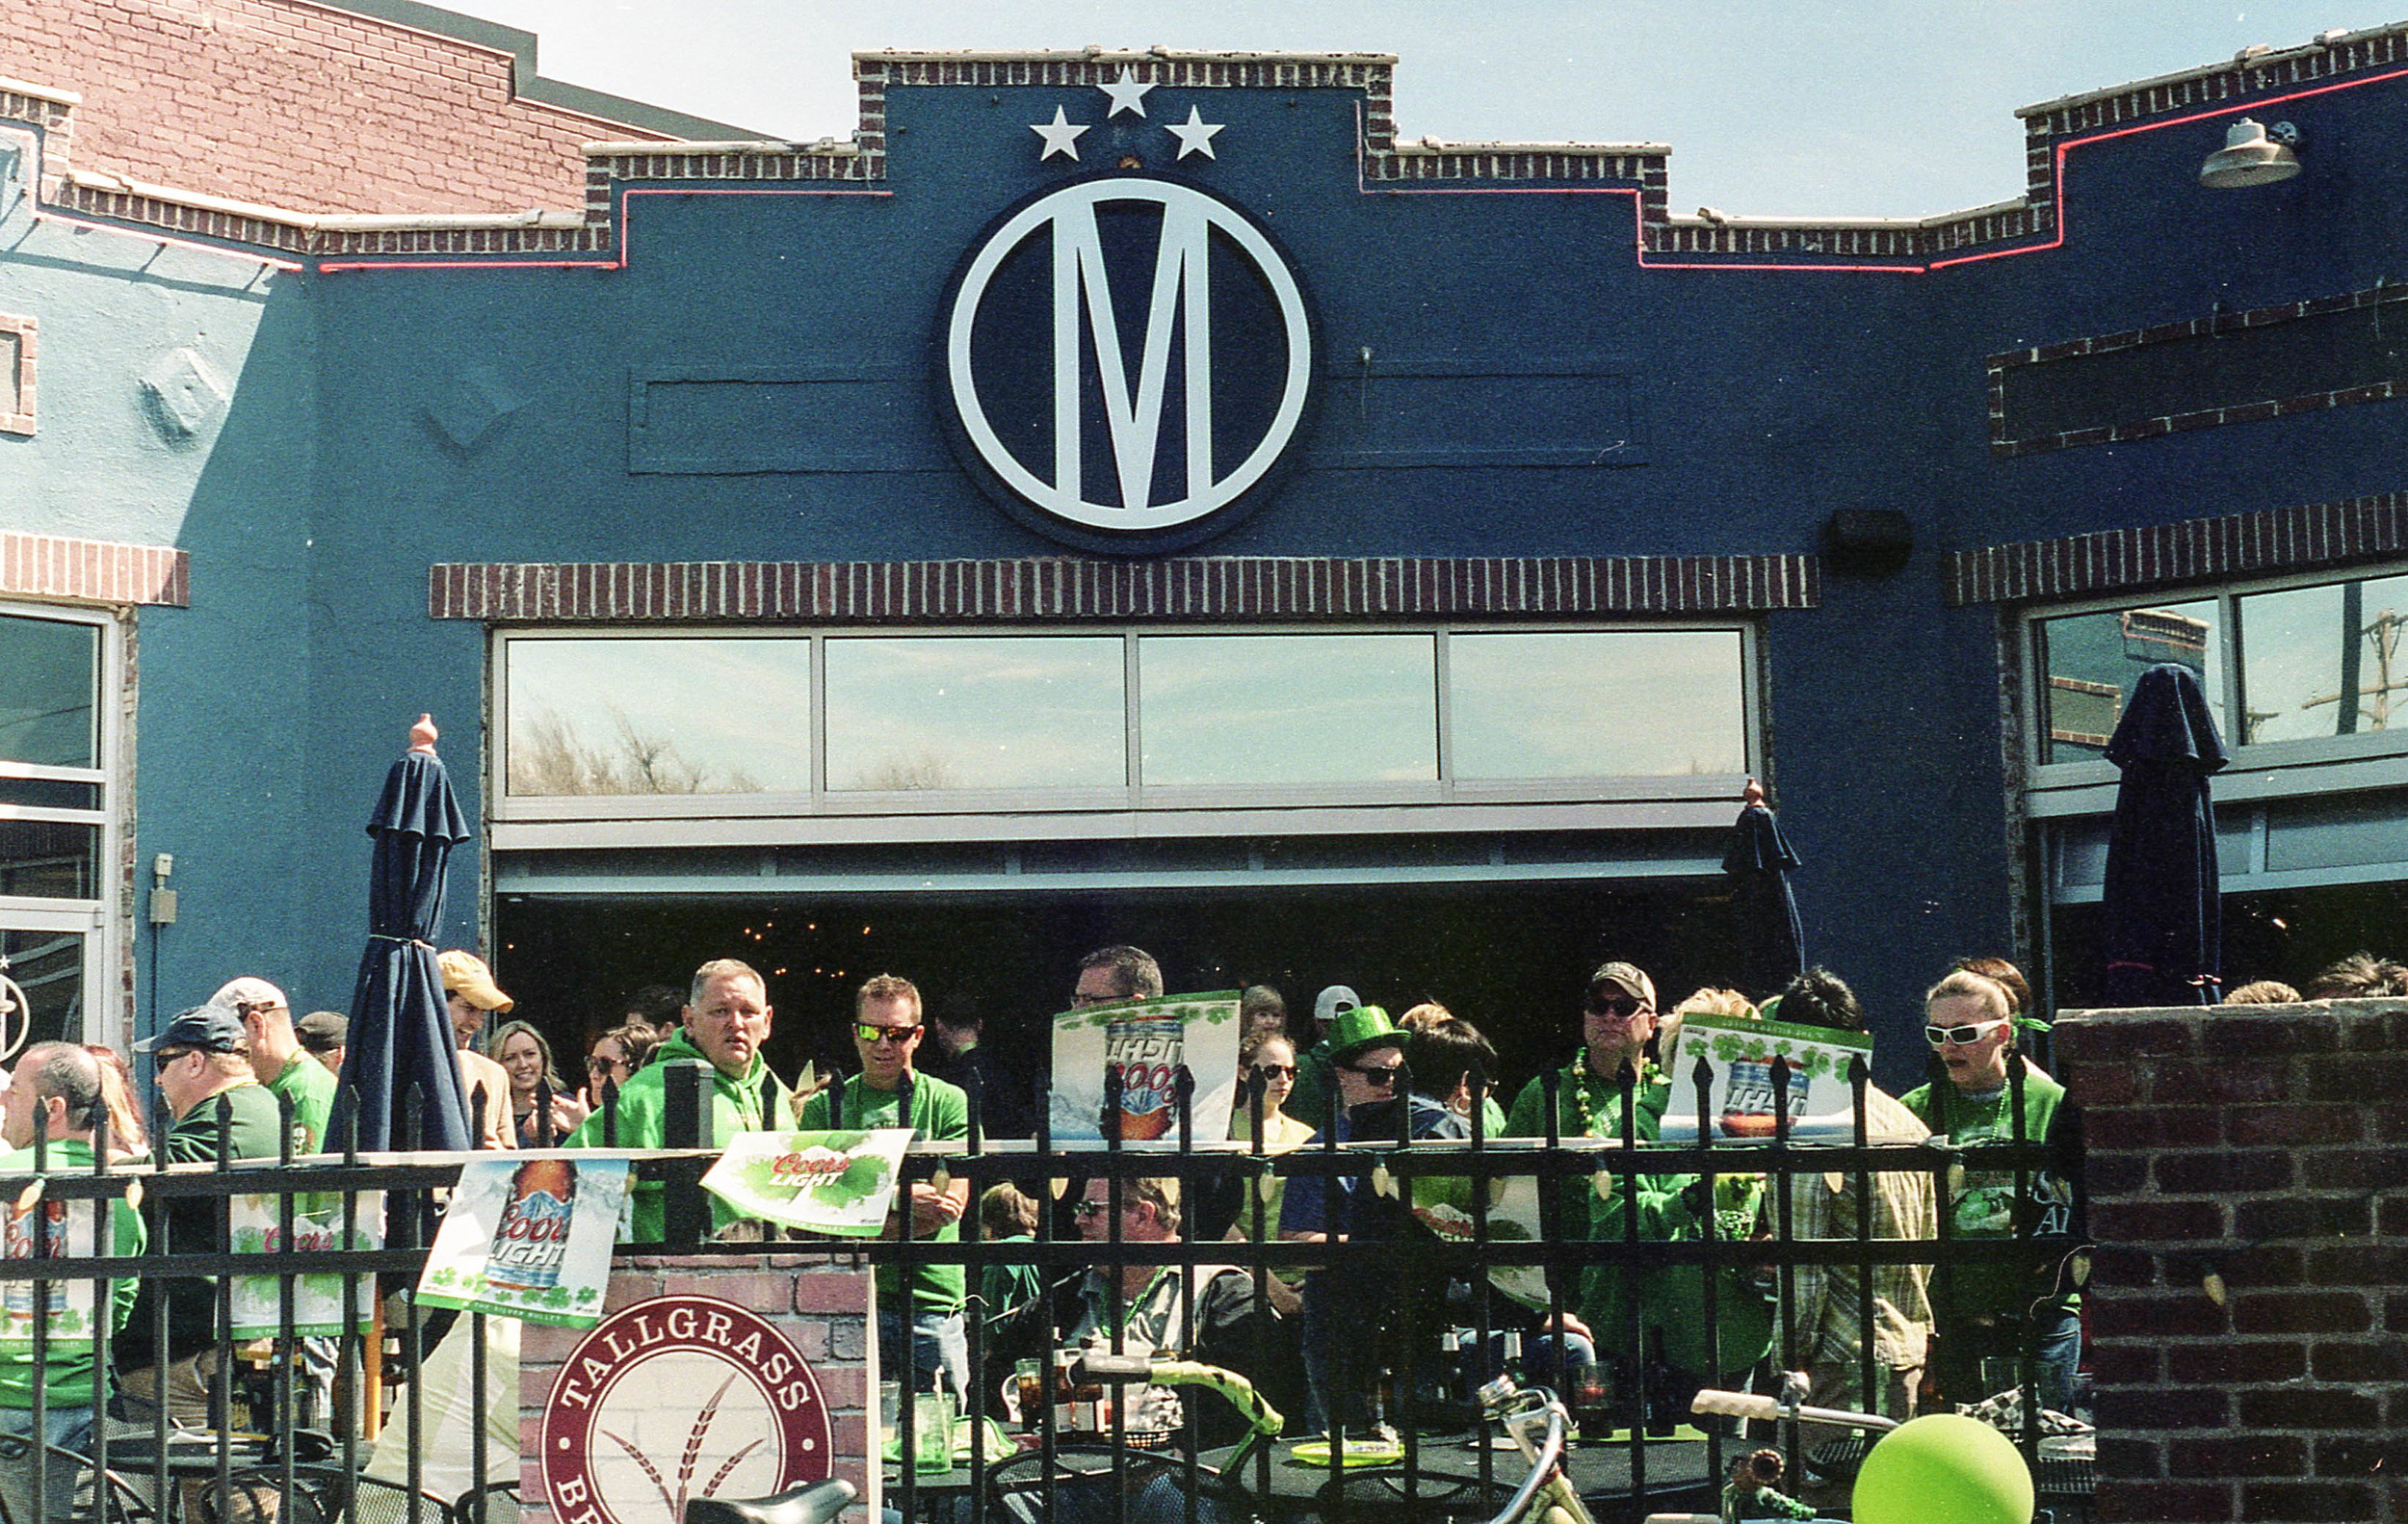 The Monarch was one of the places to be during the parade. I had a Guiness or two... heck or three while I was there.